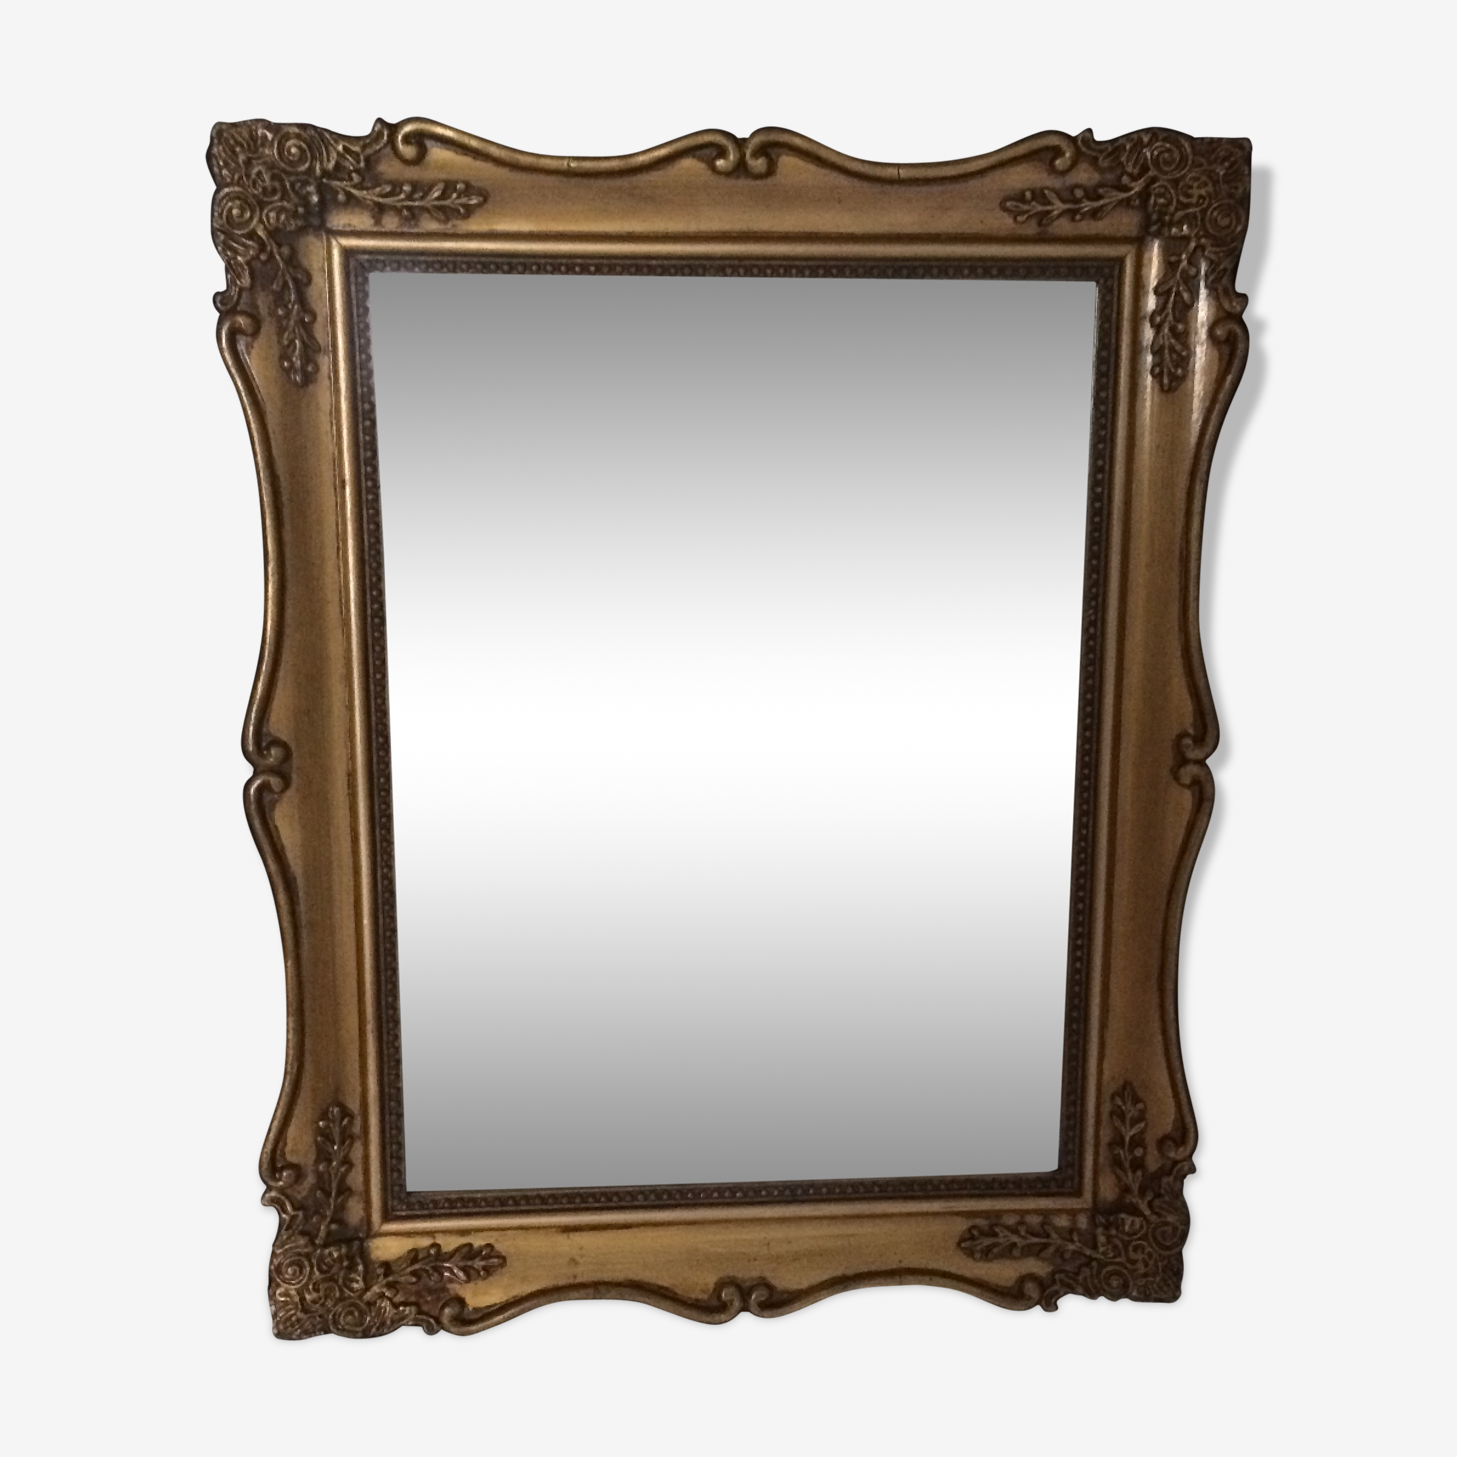 Antique golden mirror 50x40cm